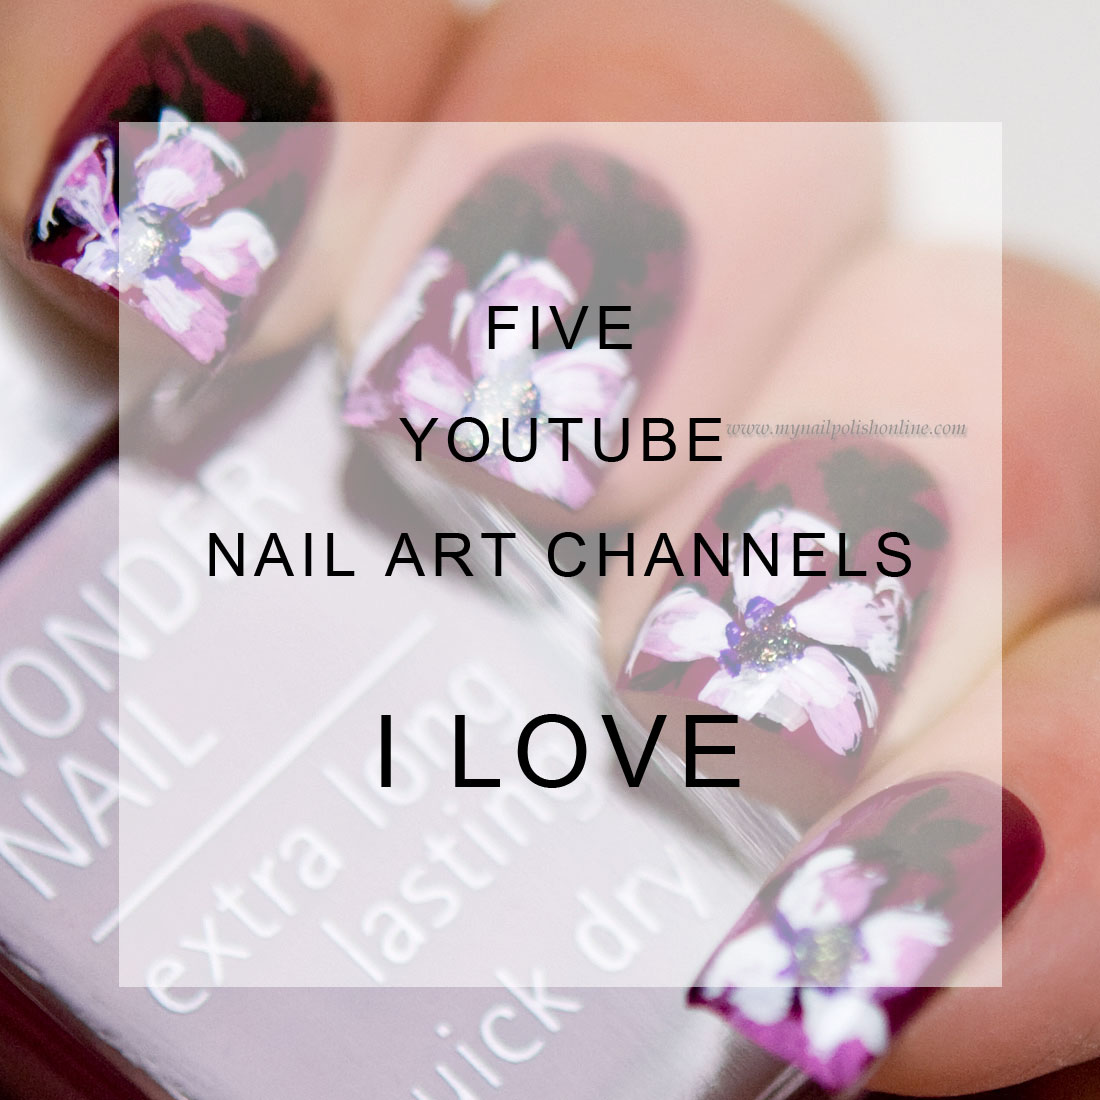 Five Youtube Channels I Love